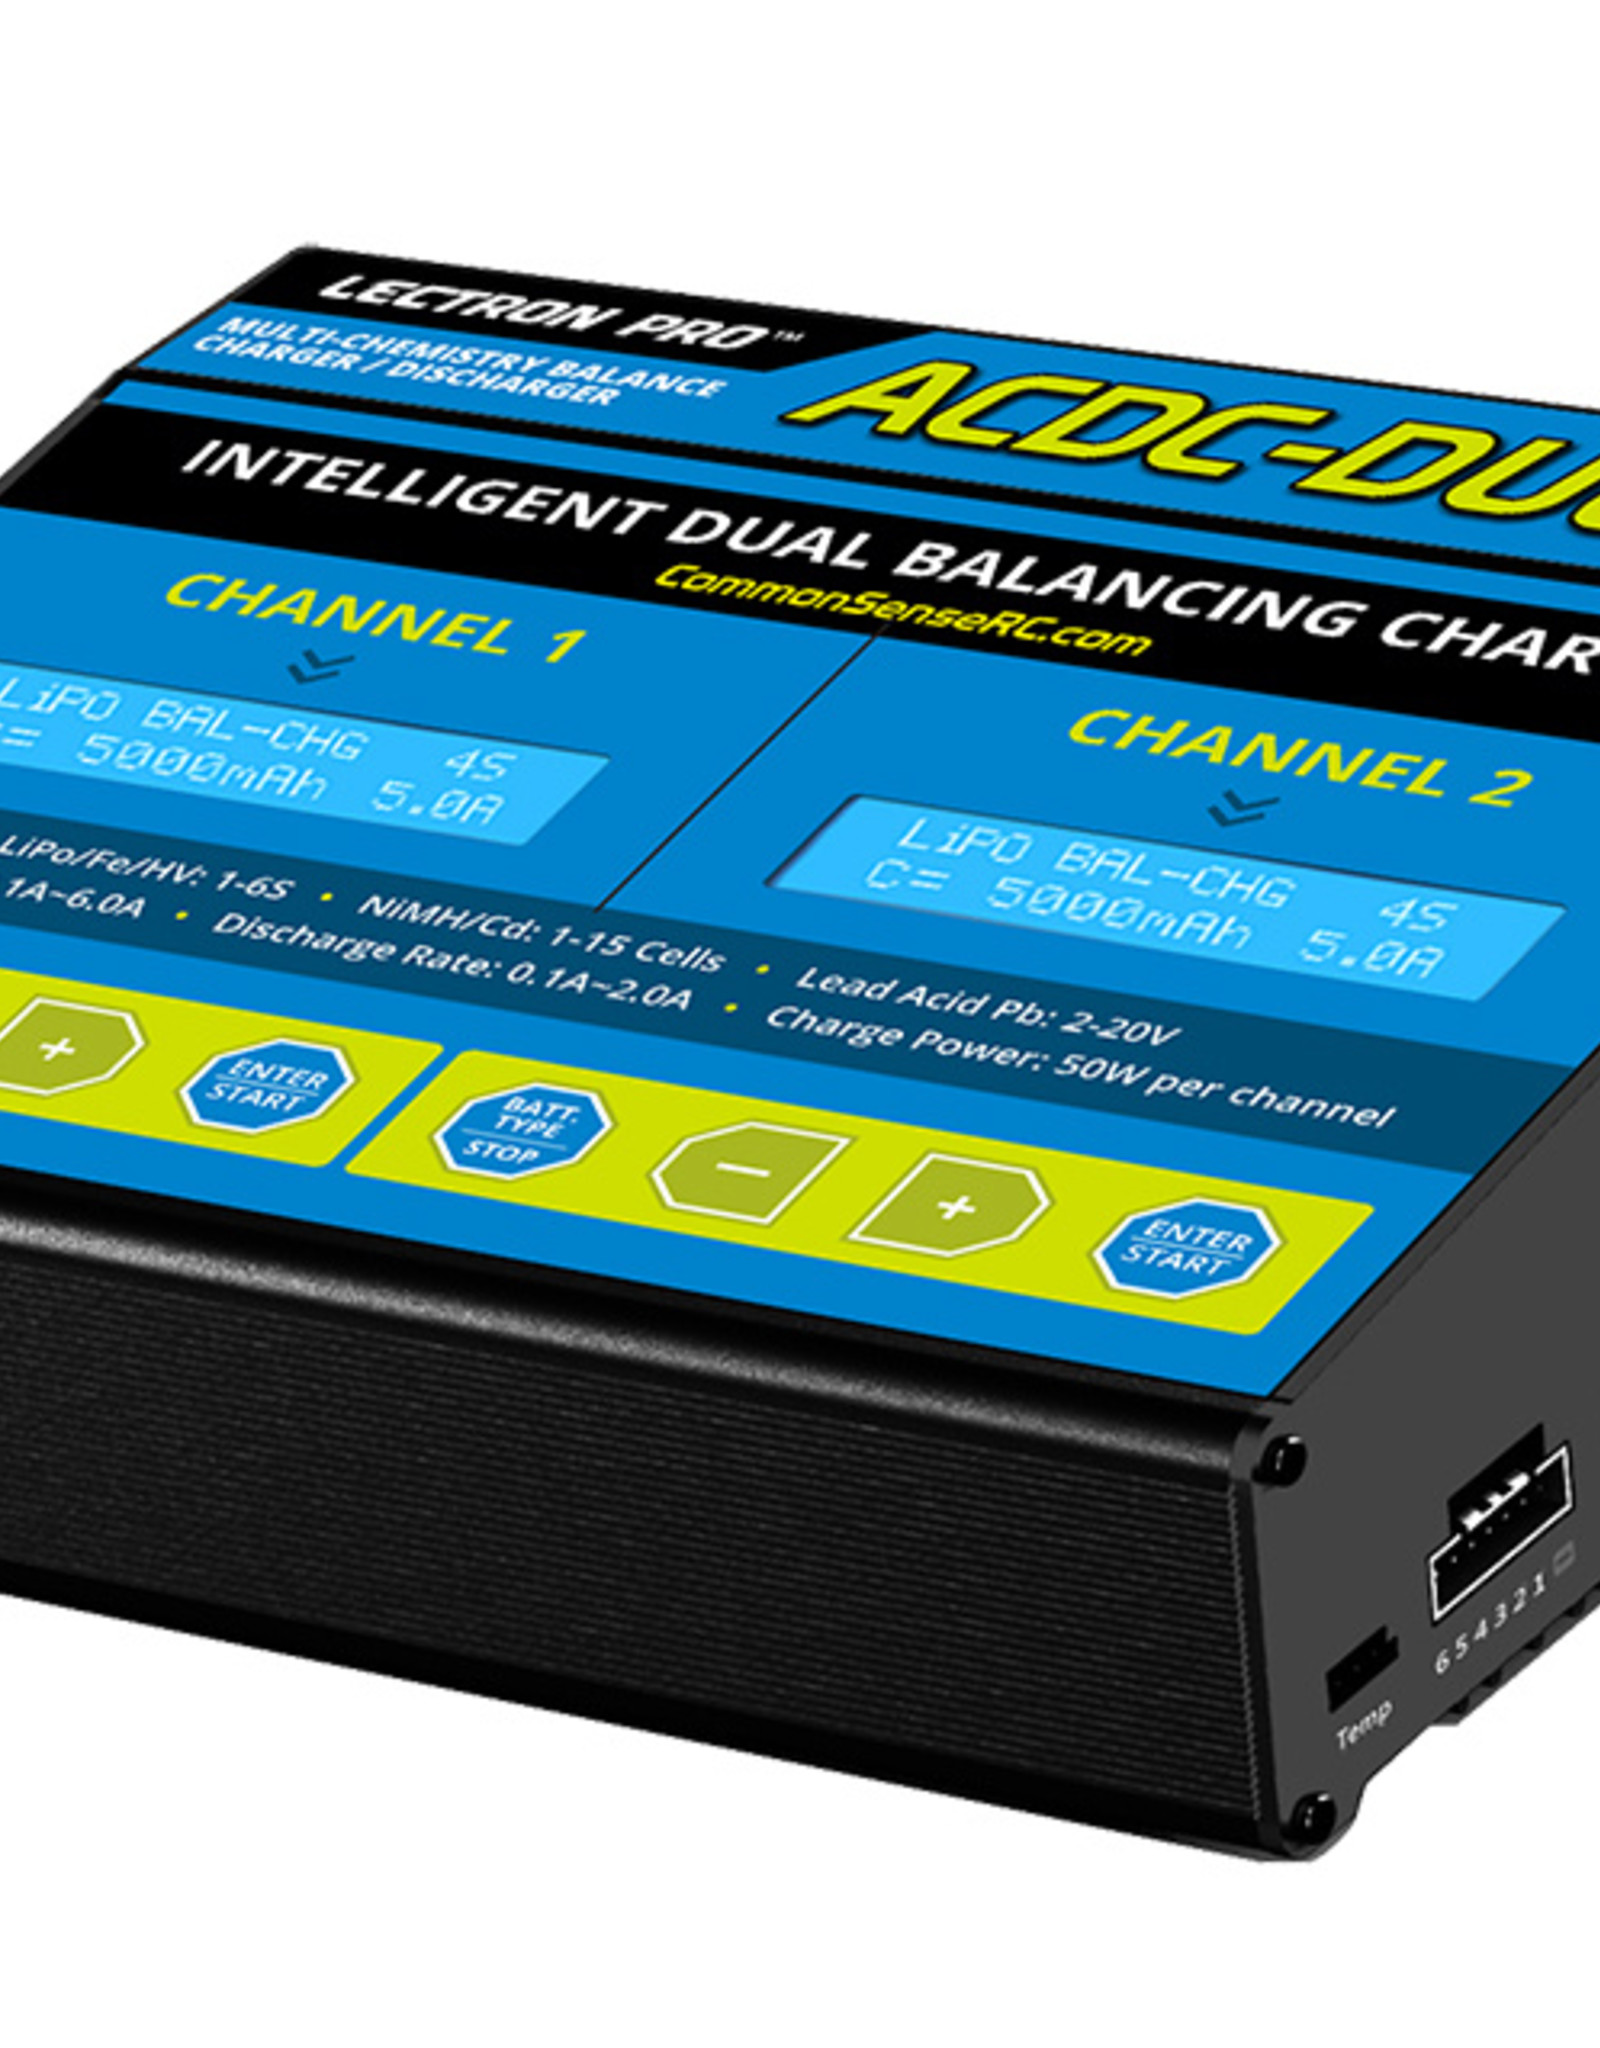 Lectron Pro ACDC-DUO - Two-Port Multi-Chemistry Balancing Charger (LiPo/LiFe/LiHV/NiMH) #ACDC-DUO